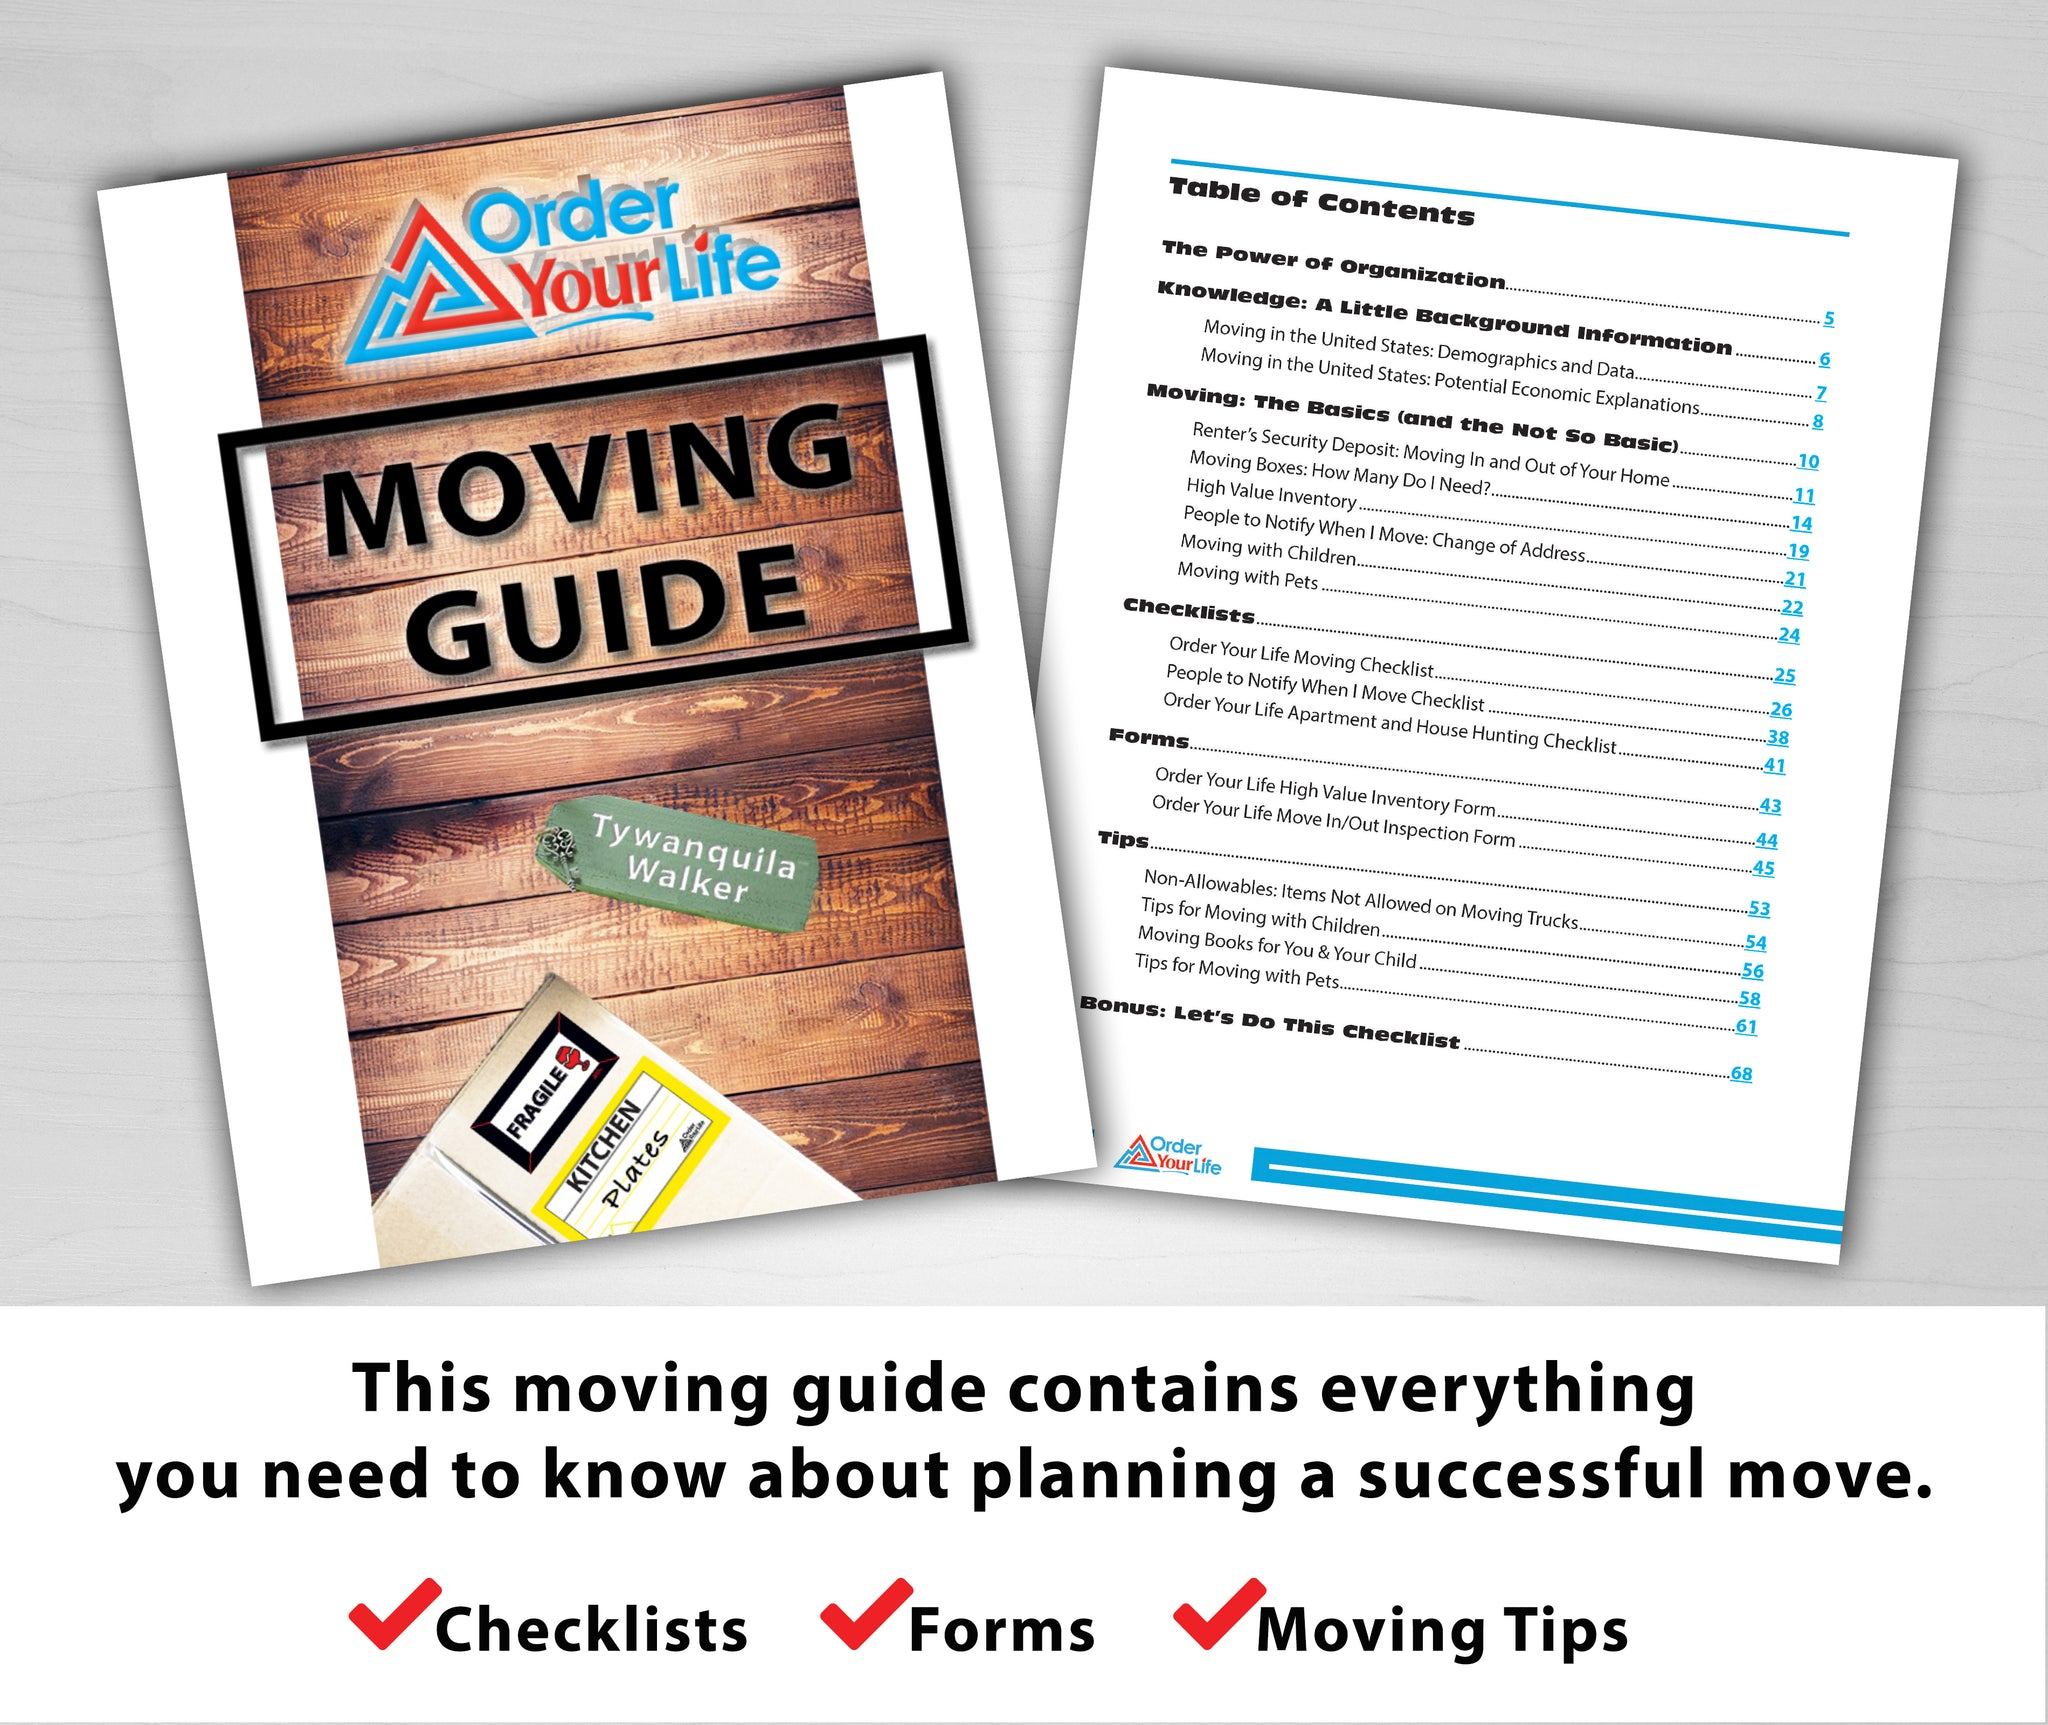 Order Your Life Moving Guide